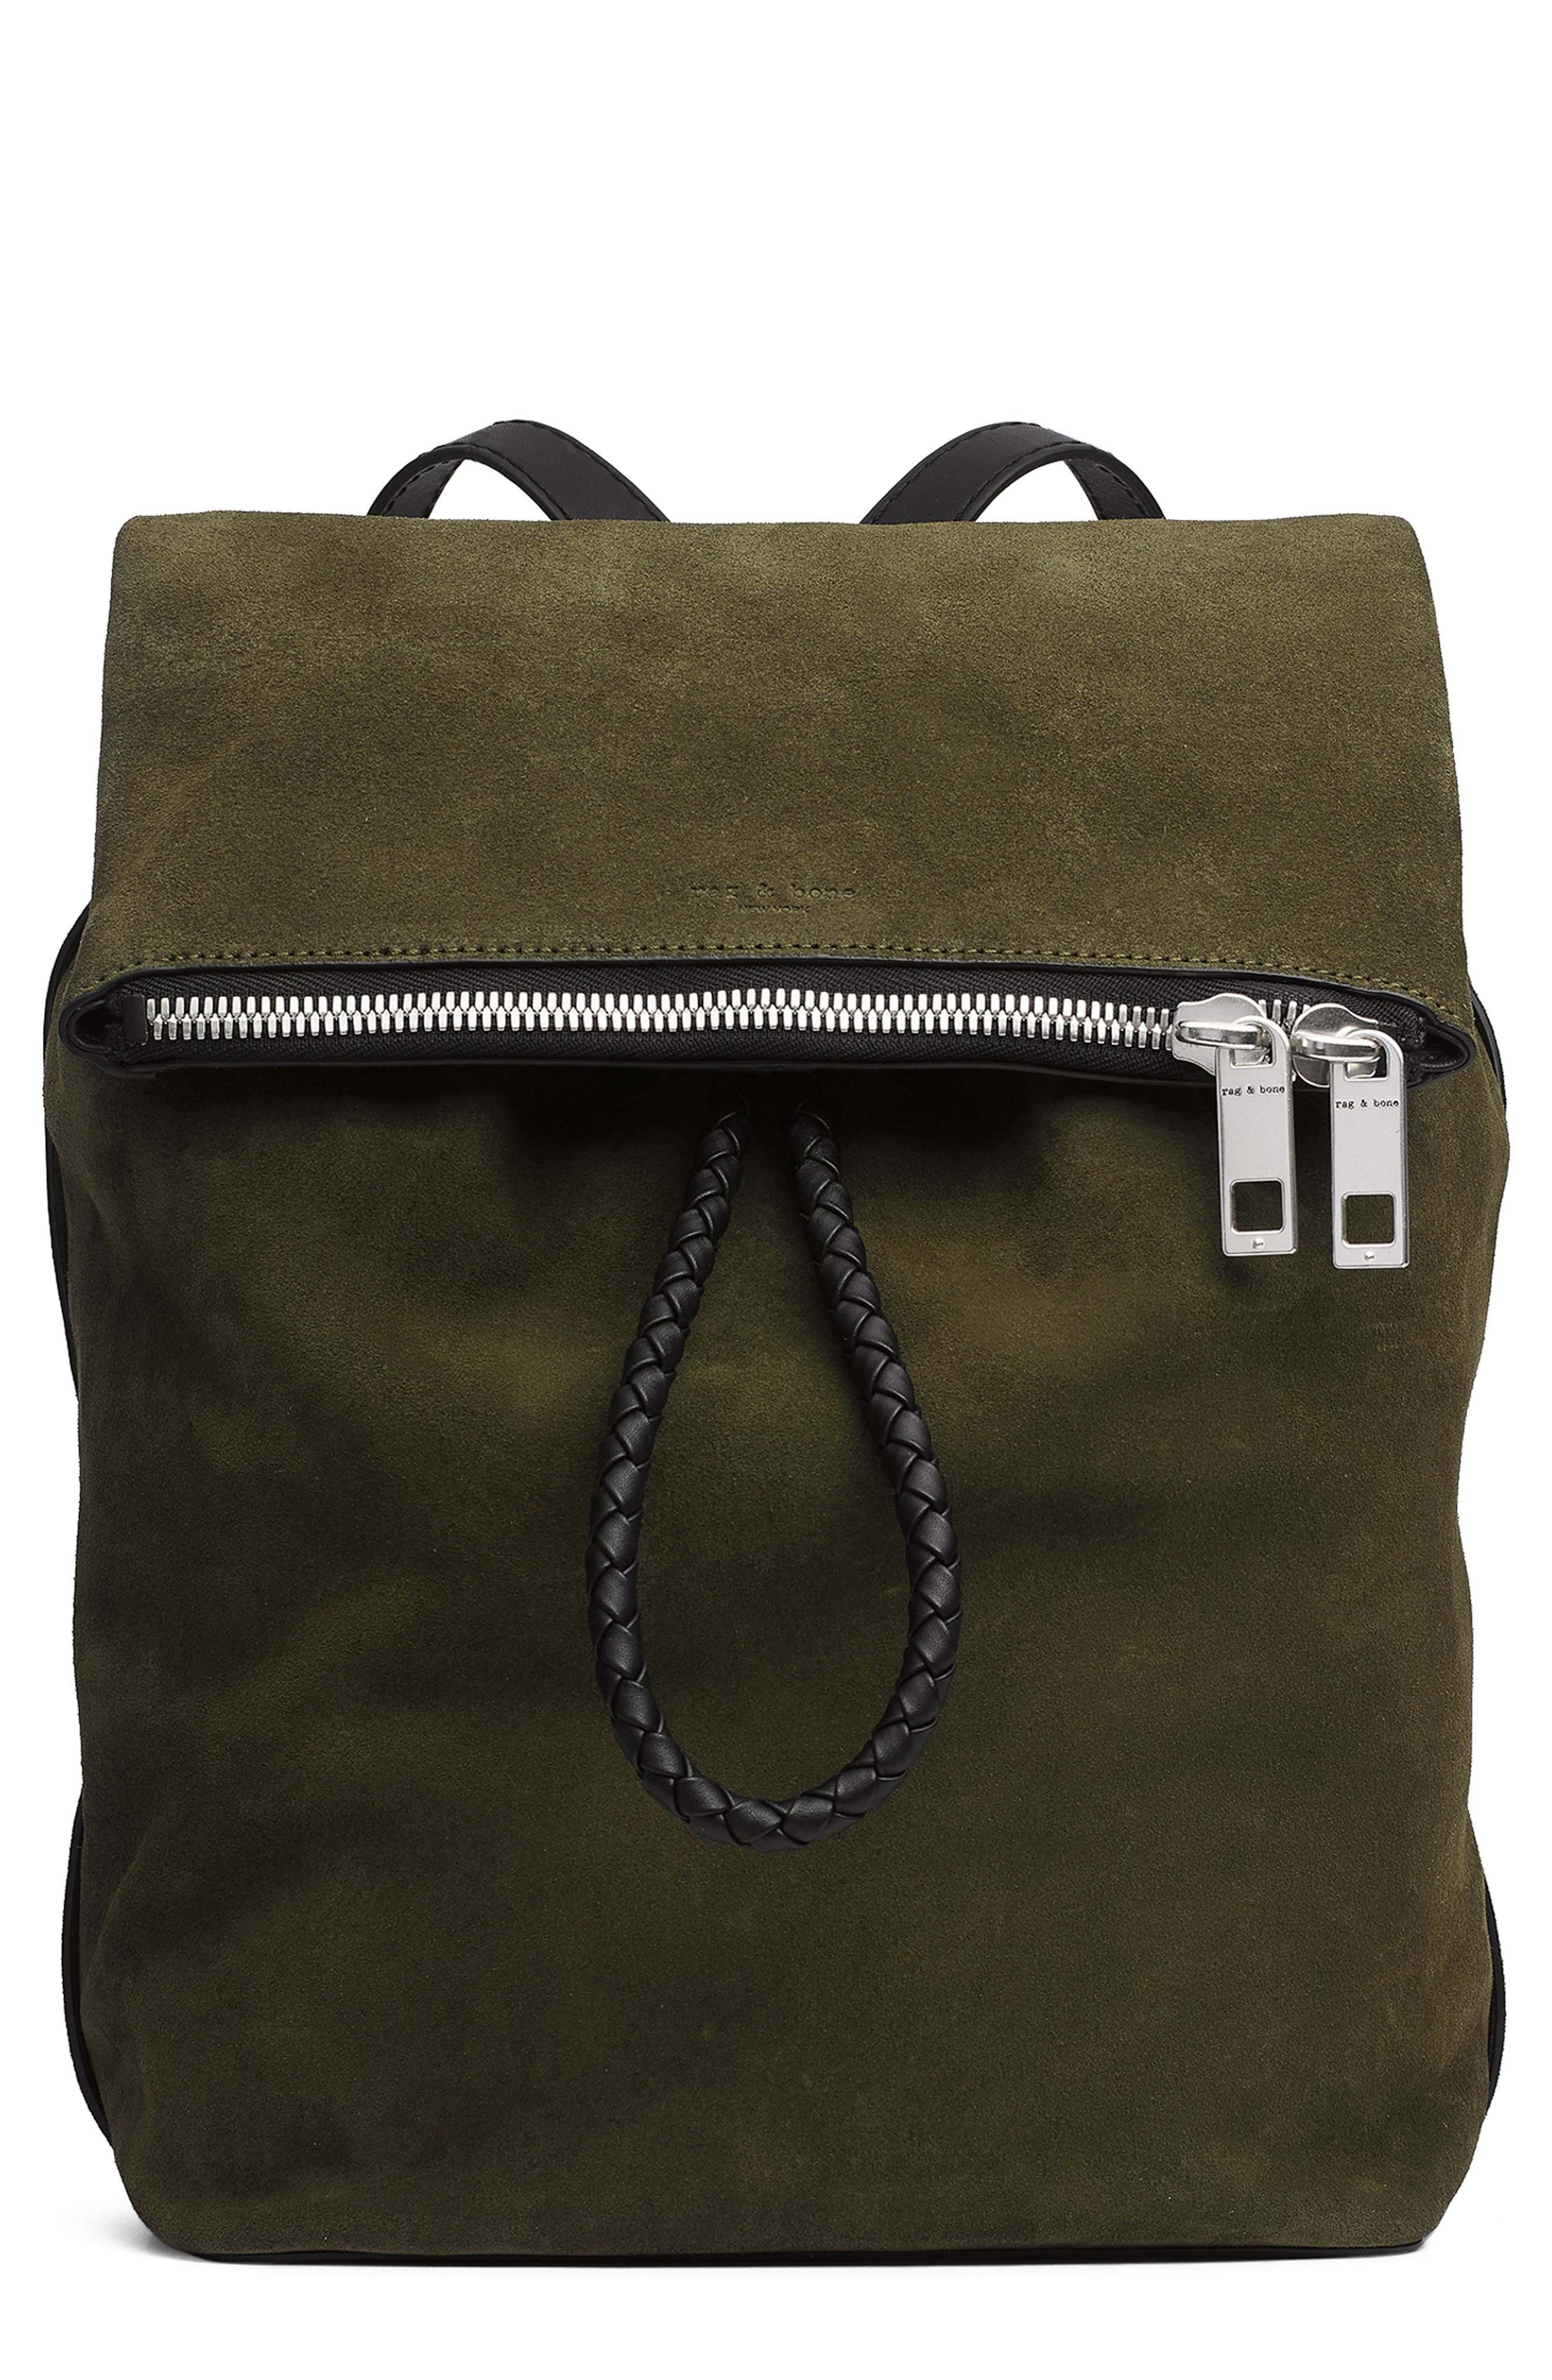 Loner Leather Backpack,                             Main thumbnail 1, color,                             OLIVE NIGHT SUEDE